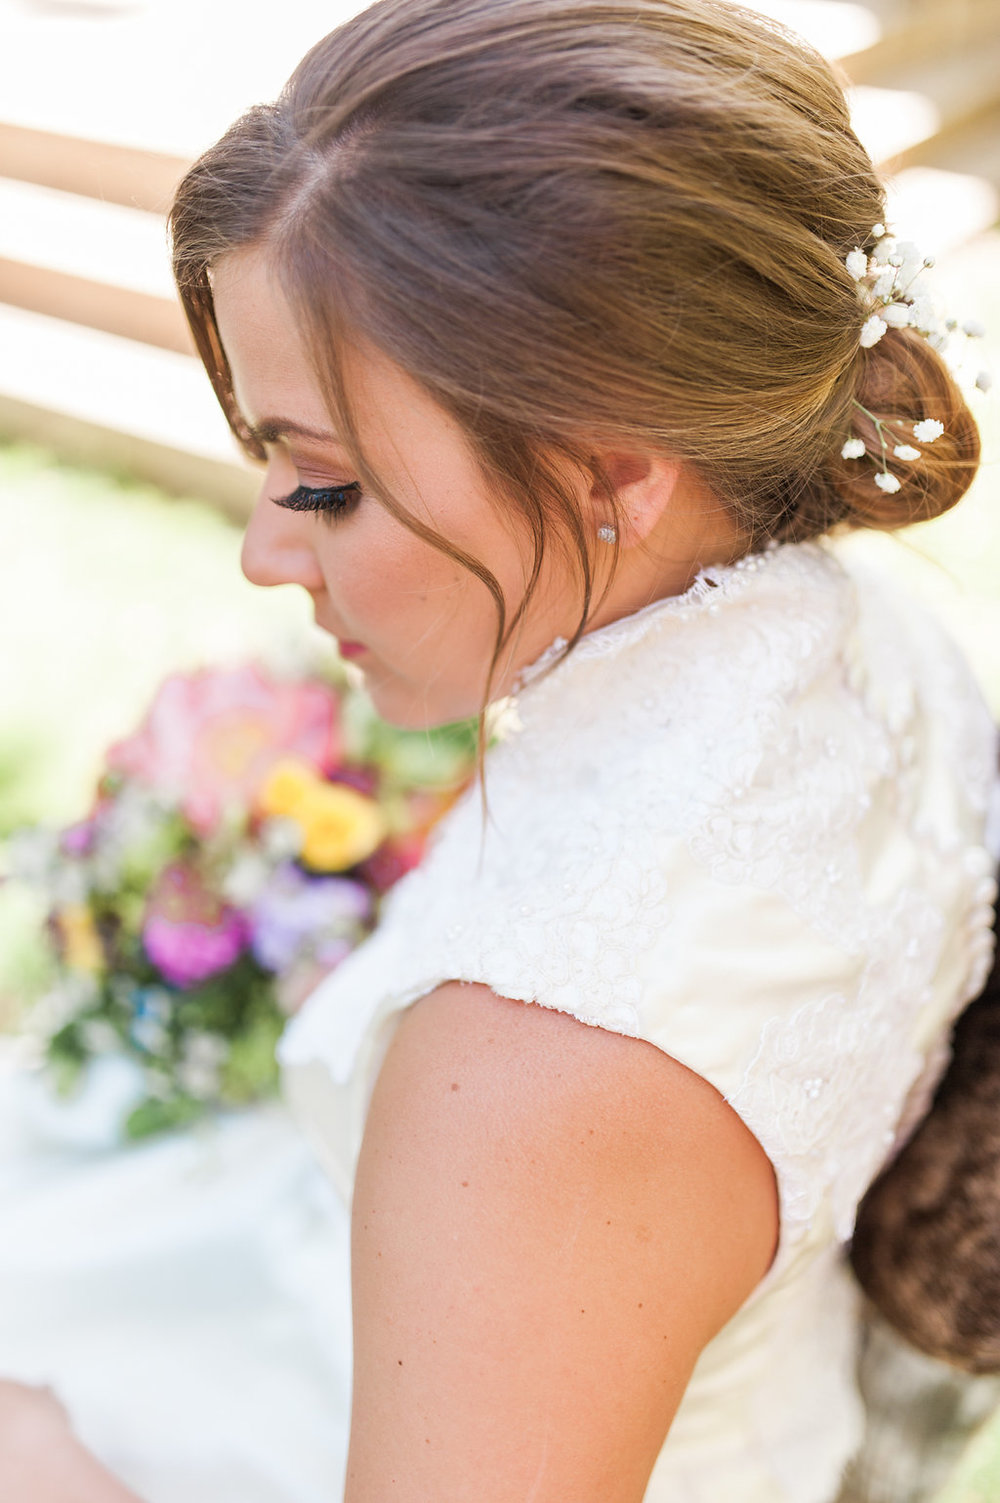 Bridal Bun Hairstyles - Iowa Farm Wedding - Private Estate Weddings